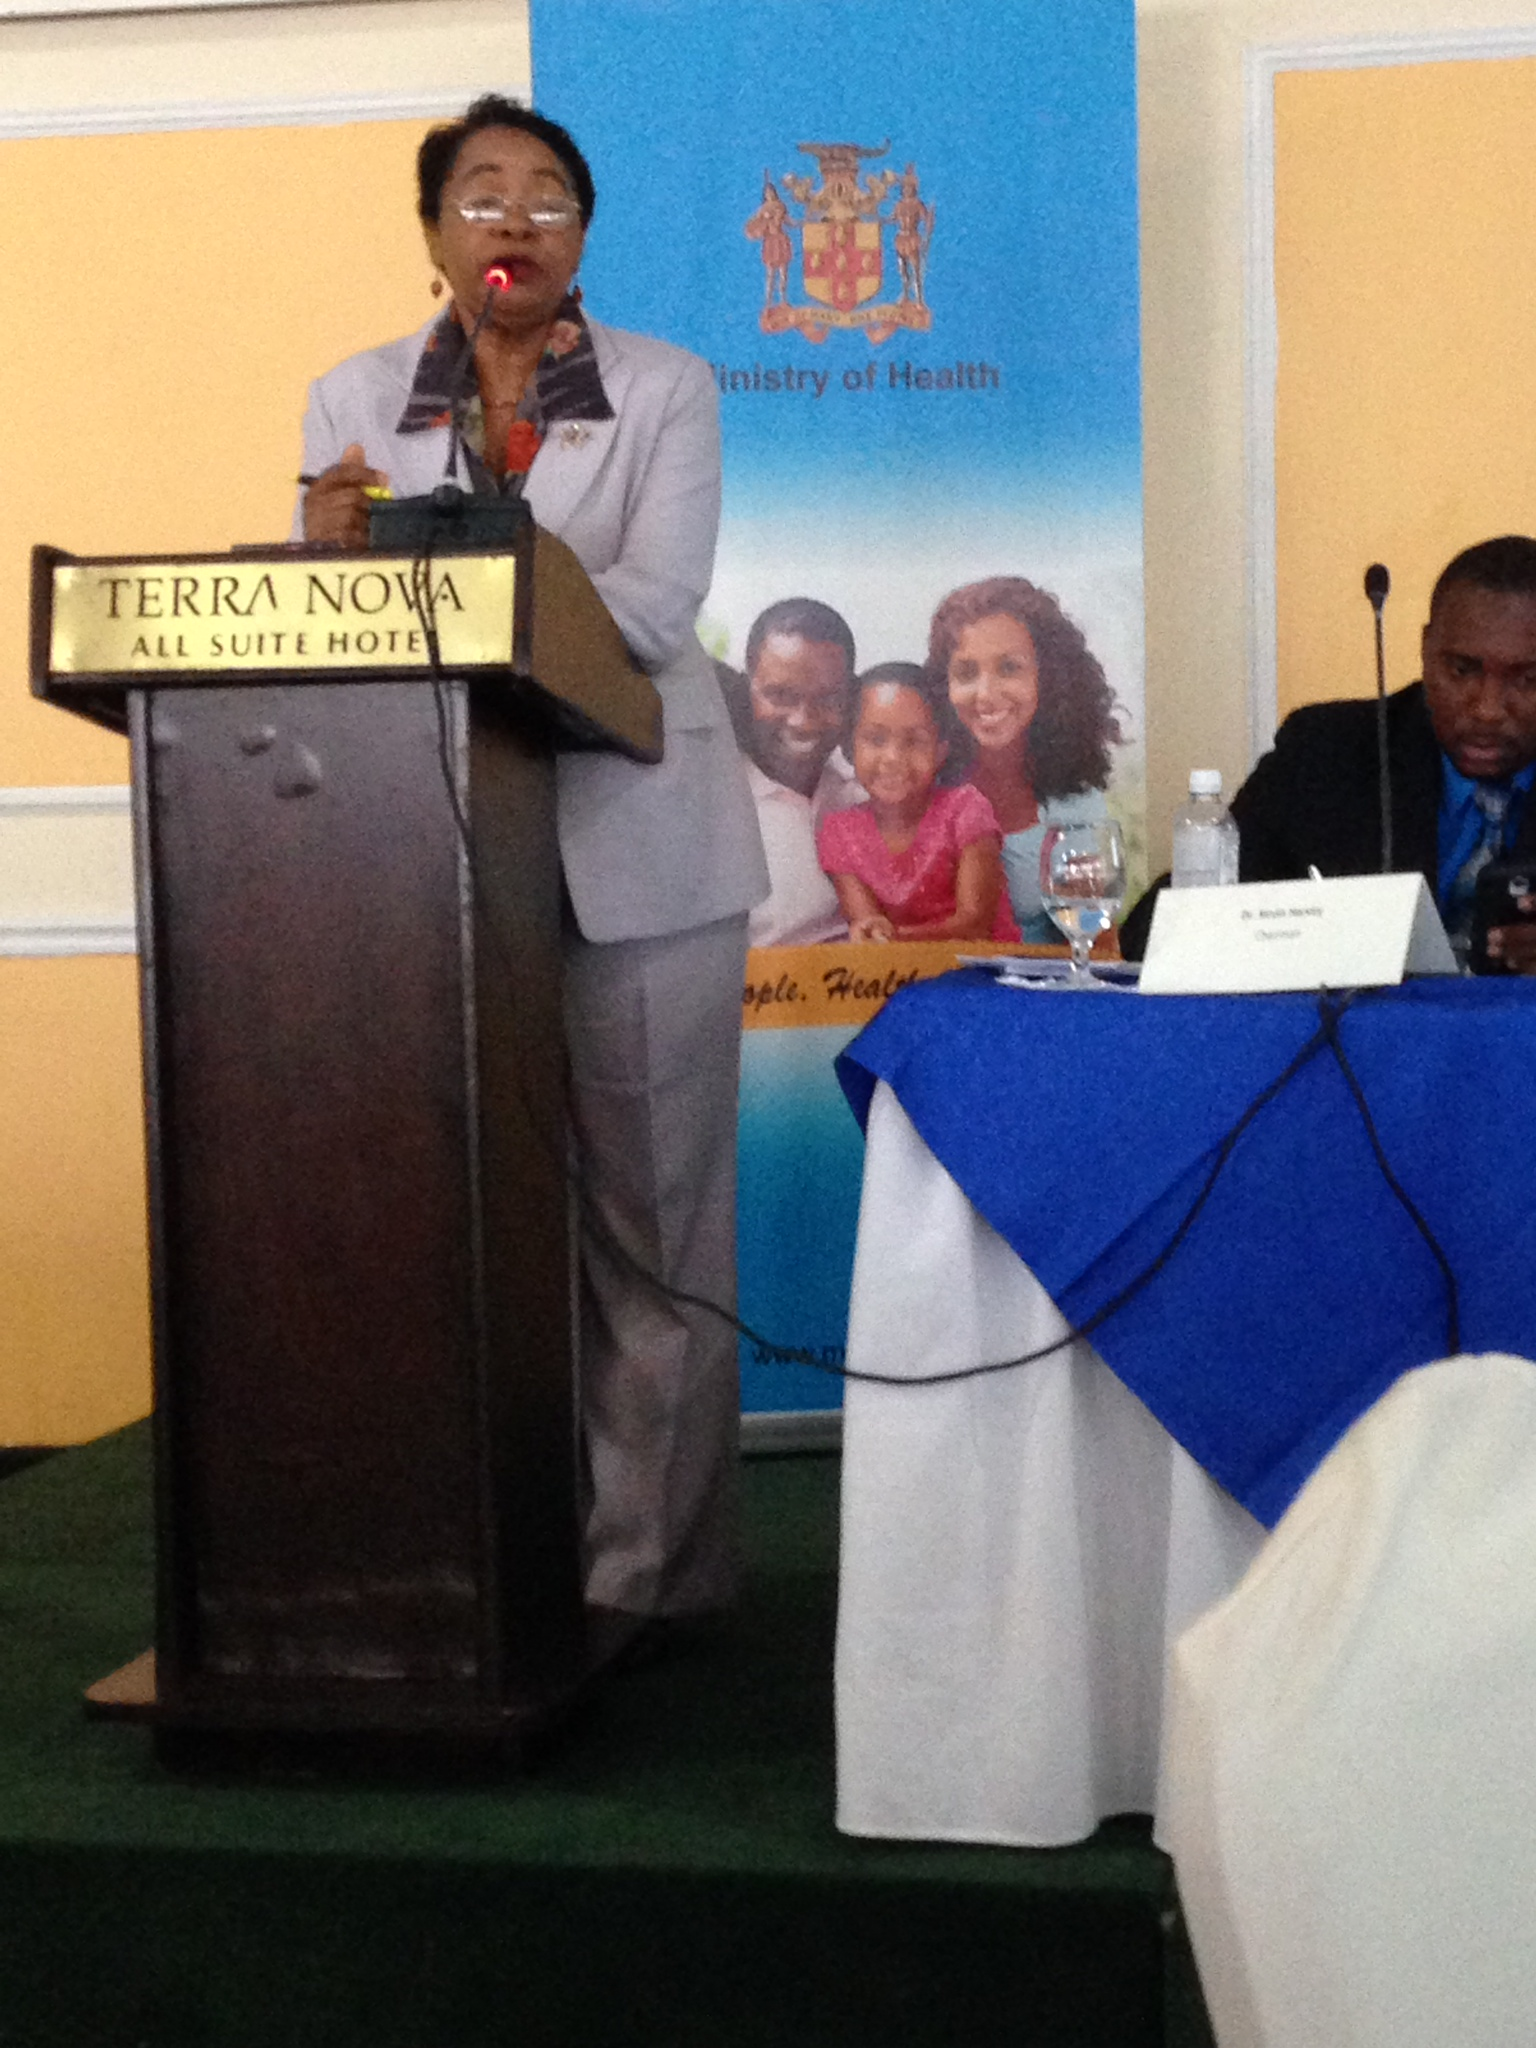 Ms Eva Lewis-Fuller speaking at the stakeholder meeting held during the needs assessment mission in Jamaica (August 2014)